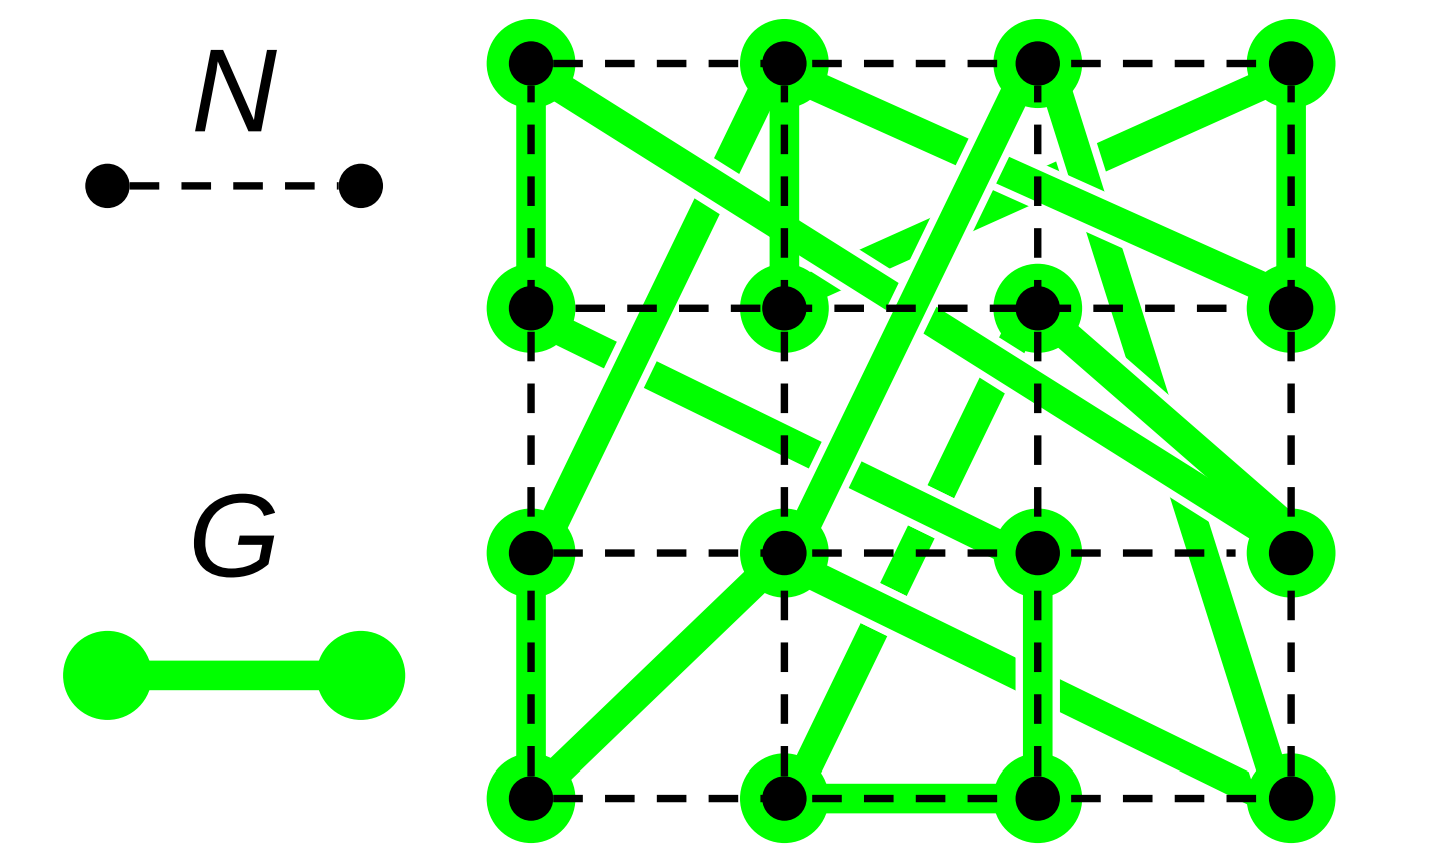 Relationship between a computational mesh N and a small-world interaction network G constructed over N